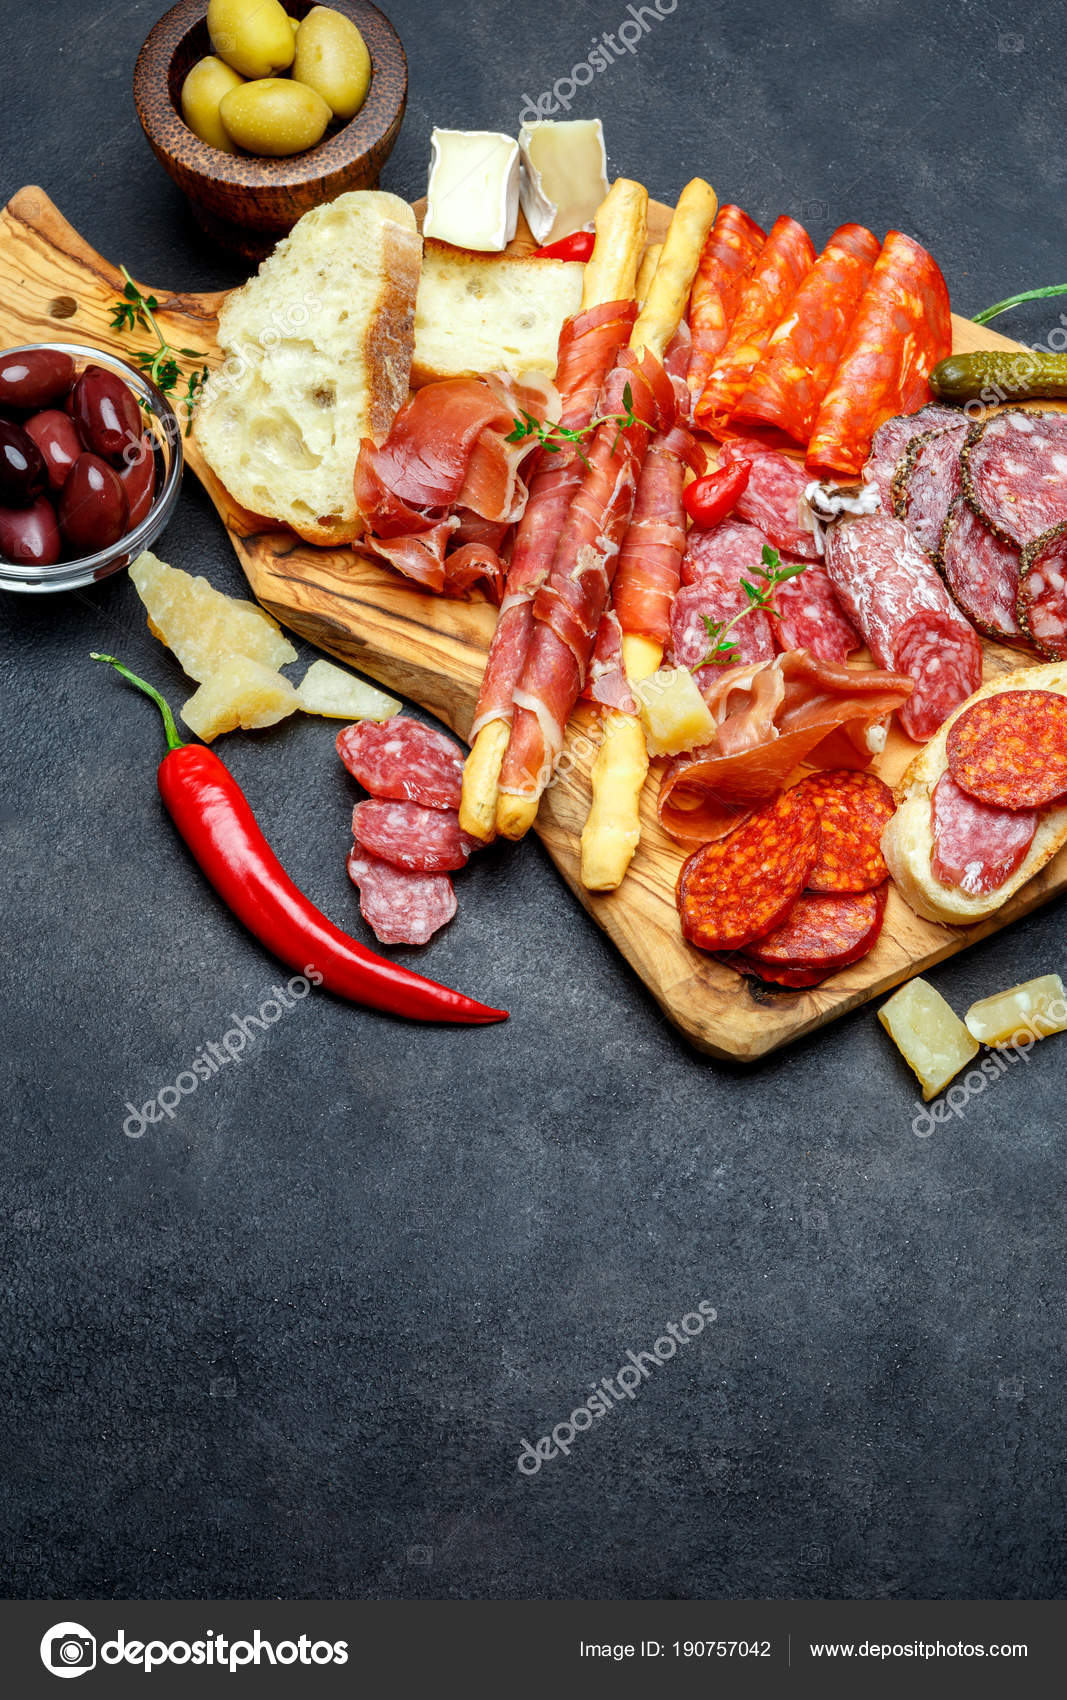 Meat and cheese plate with sausage prosciutto olives u2014 Stock Photo & meat and cheese plate with sausage prosciutto olives u2014 Stock Photo ...